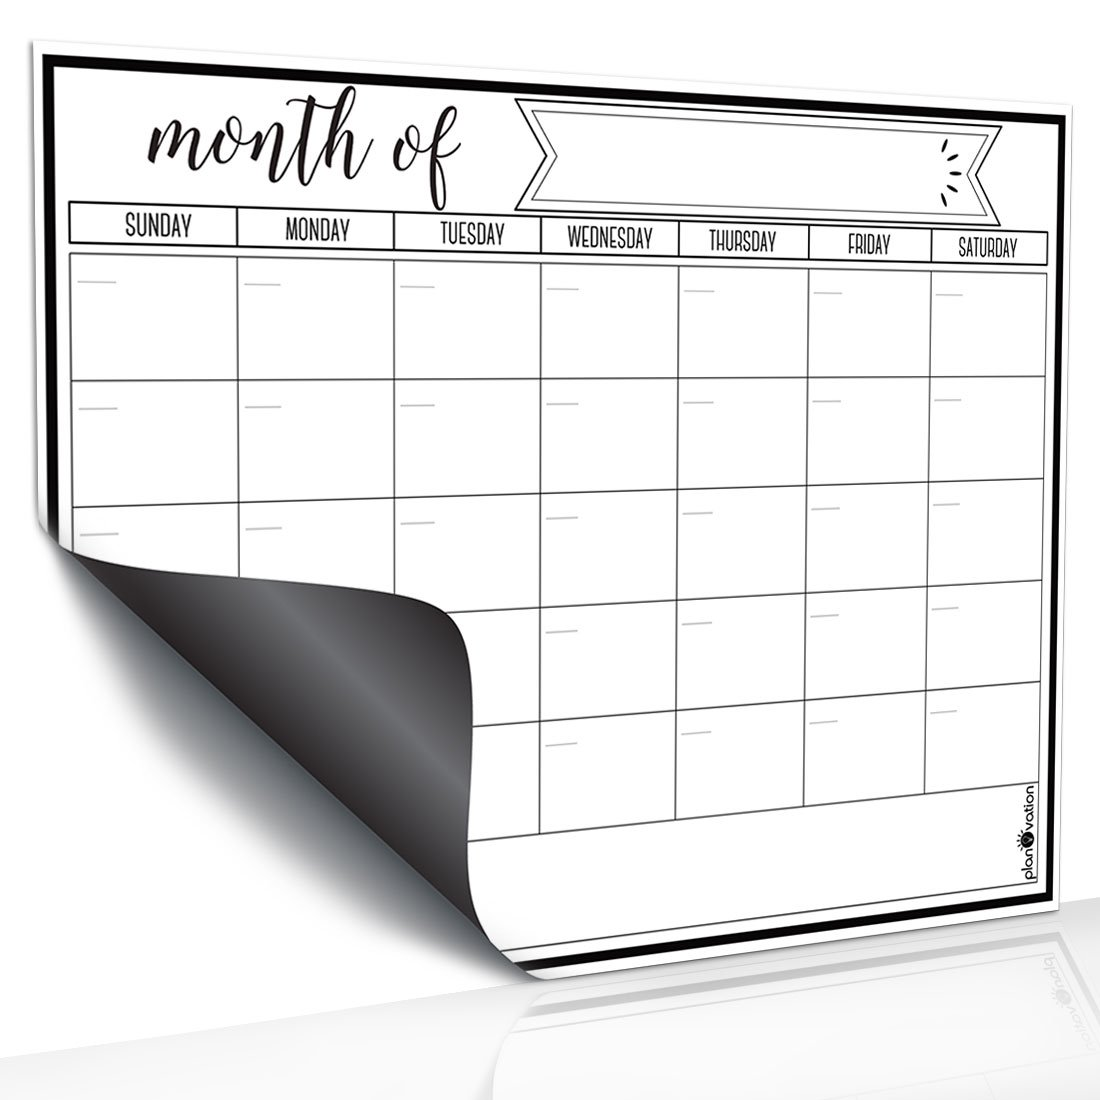 Magnetic Dry Erase Refrigerator Calendar by planOvation | Large 2017 Calendar Whiteboard Monthly Planner Magnet Traffic & Trade Group